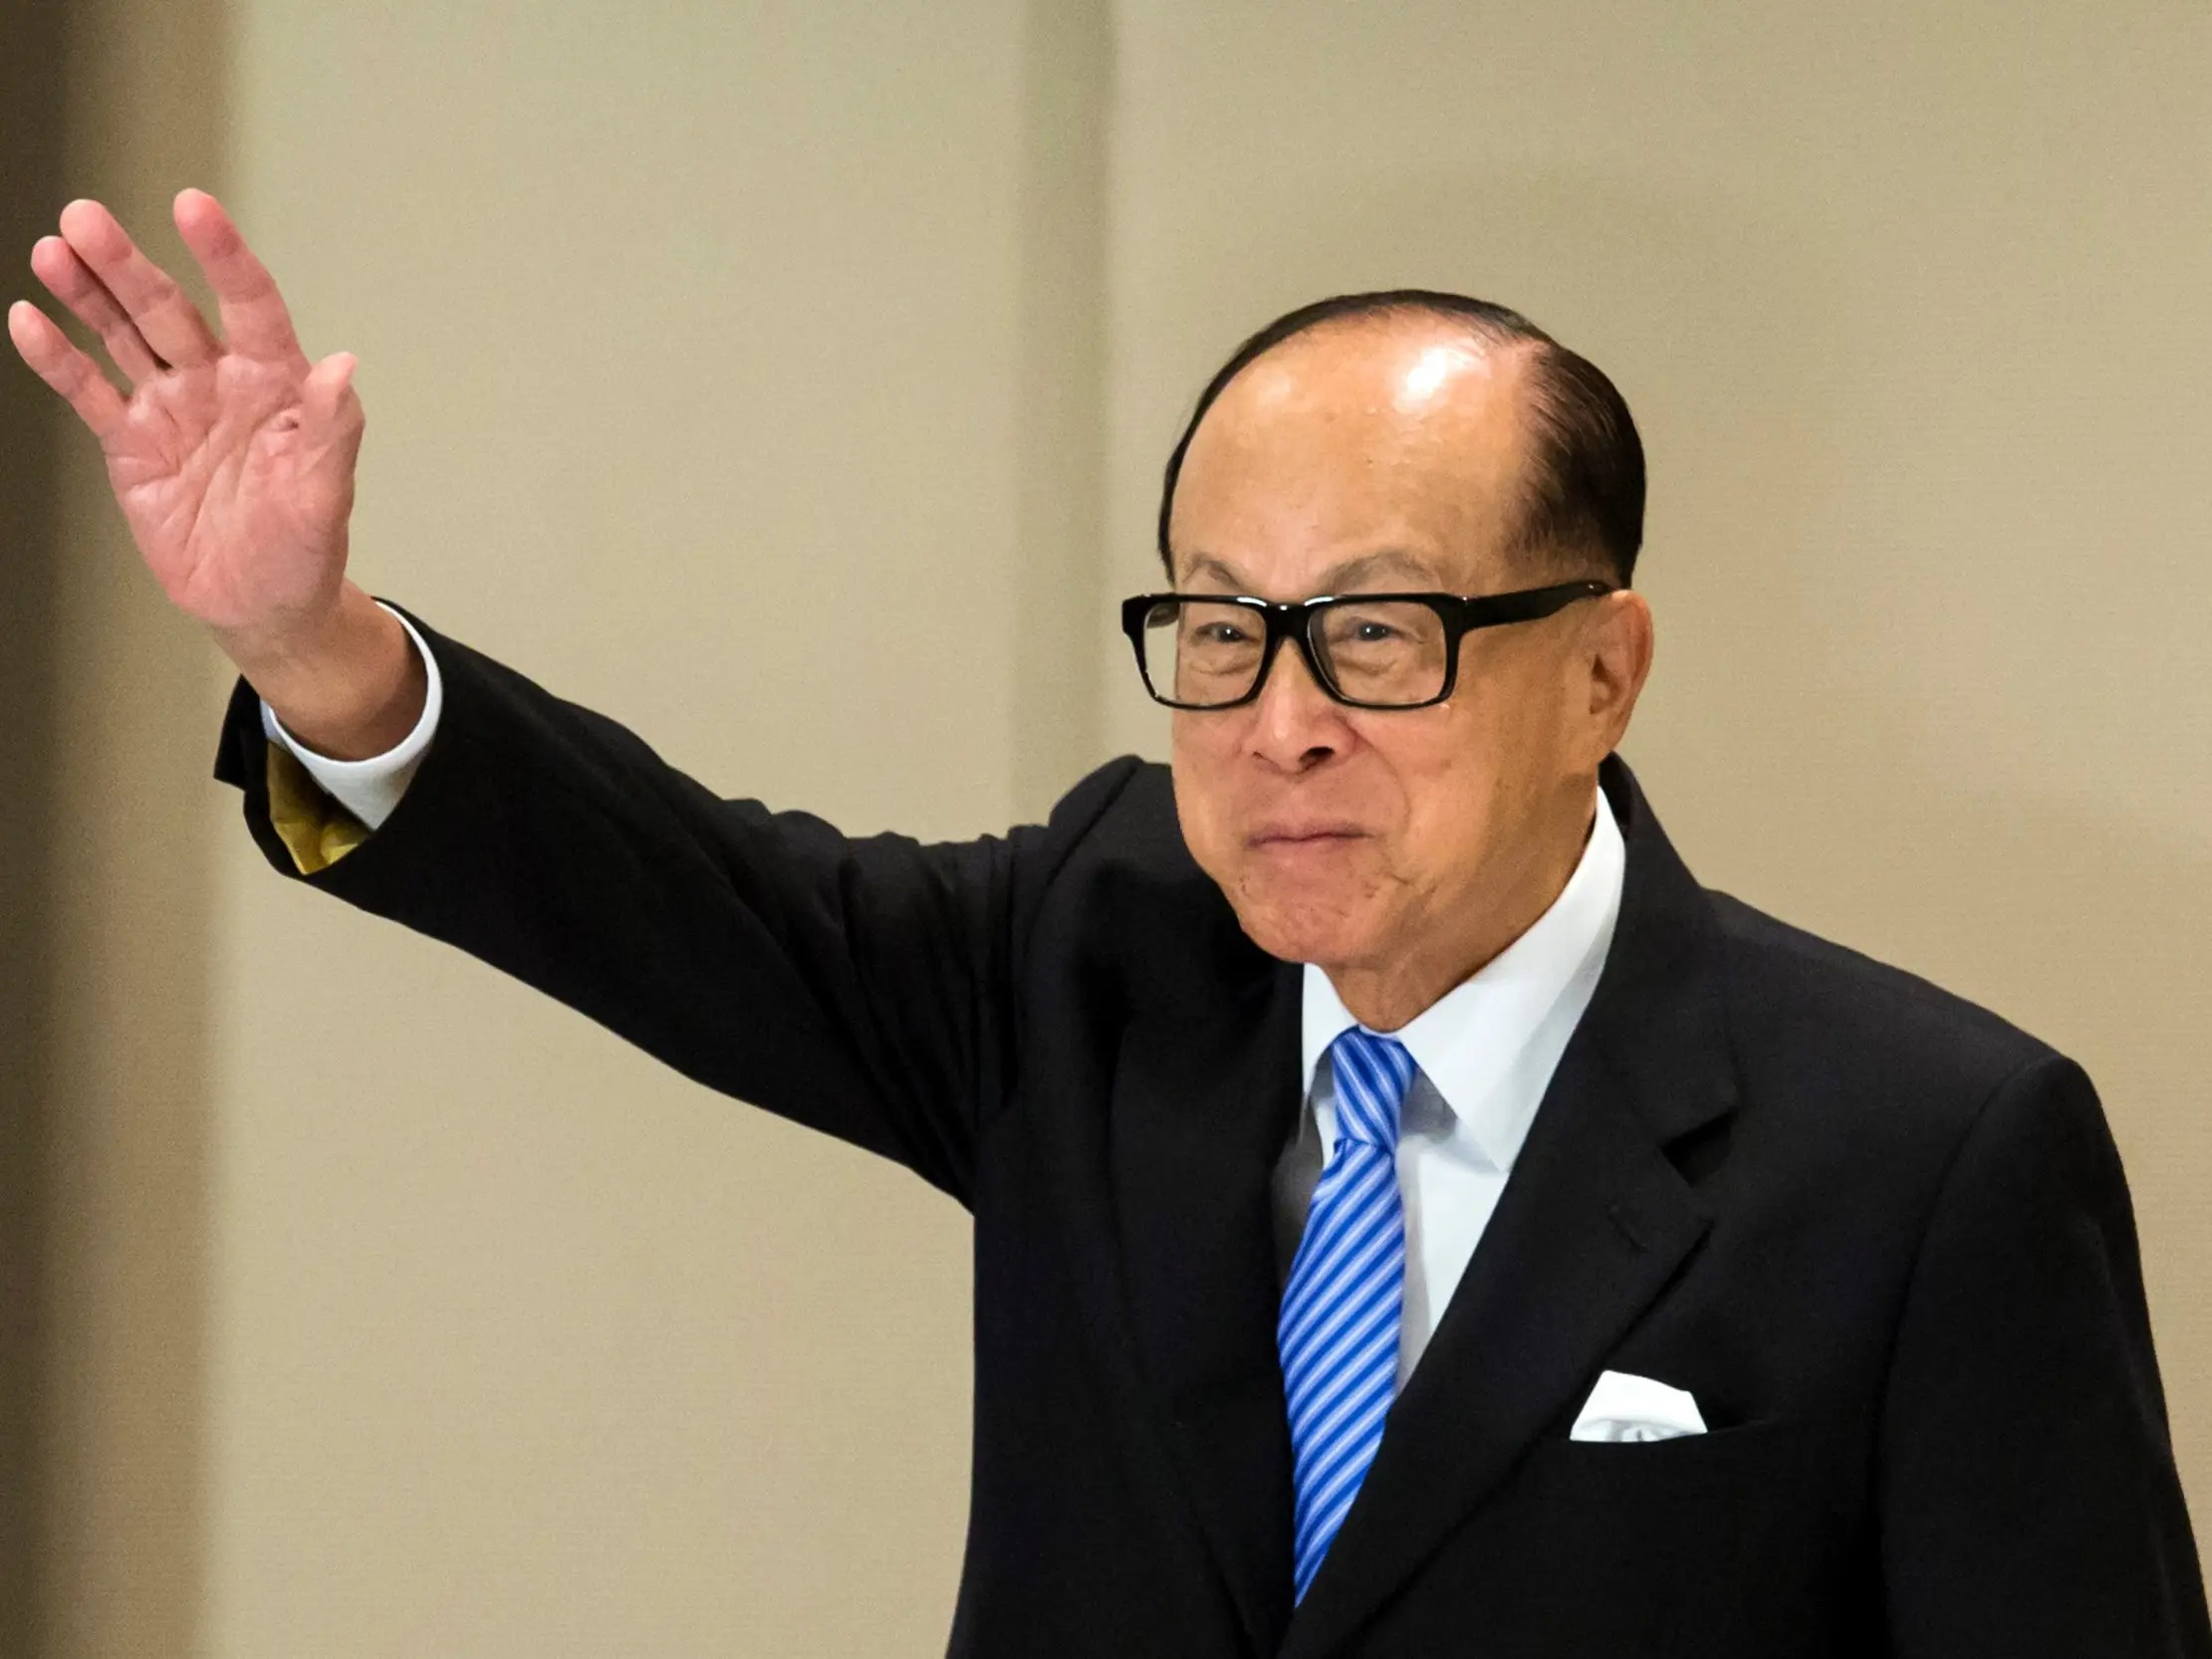 Li Ka-shing quit school at 15 to work in a plastics factory and is now the richest man in Hong Kong.